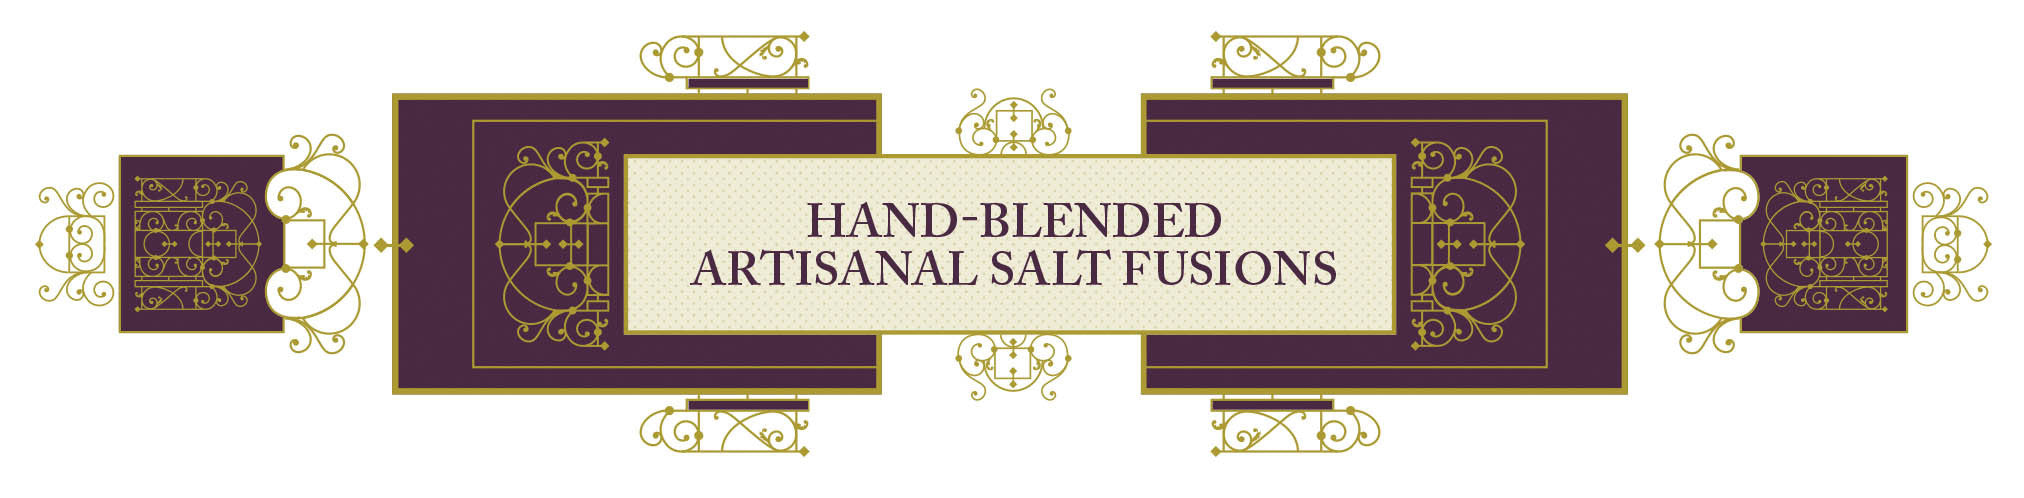 Hand blended artisanal salt fusions from Lift Flavours